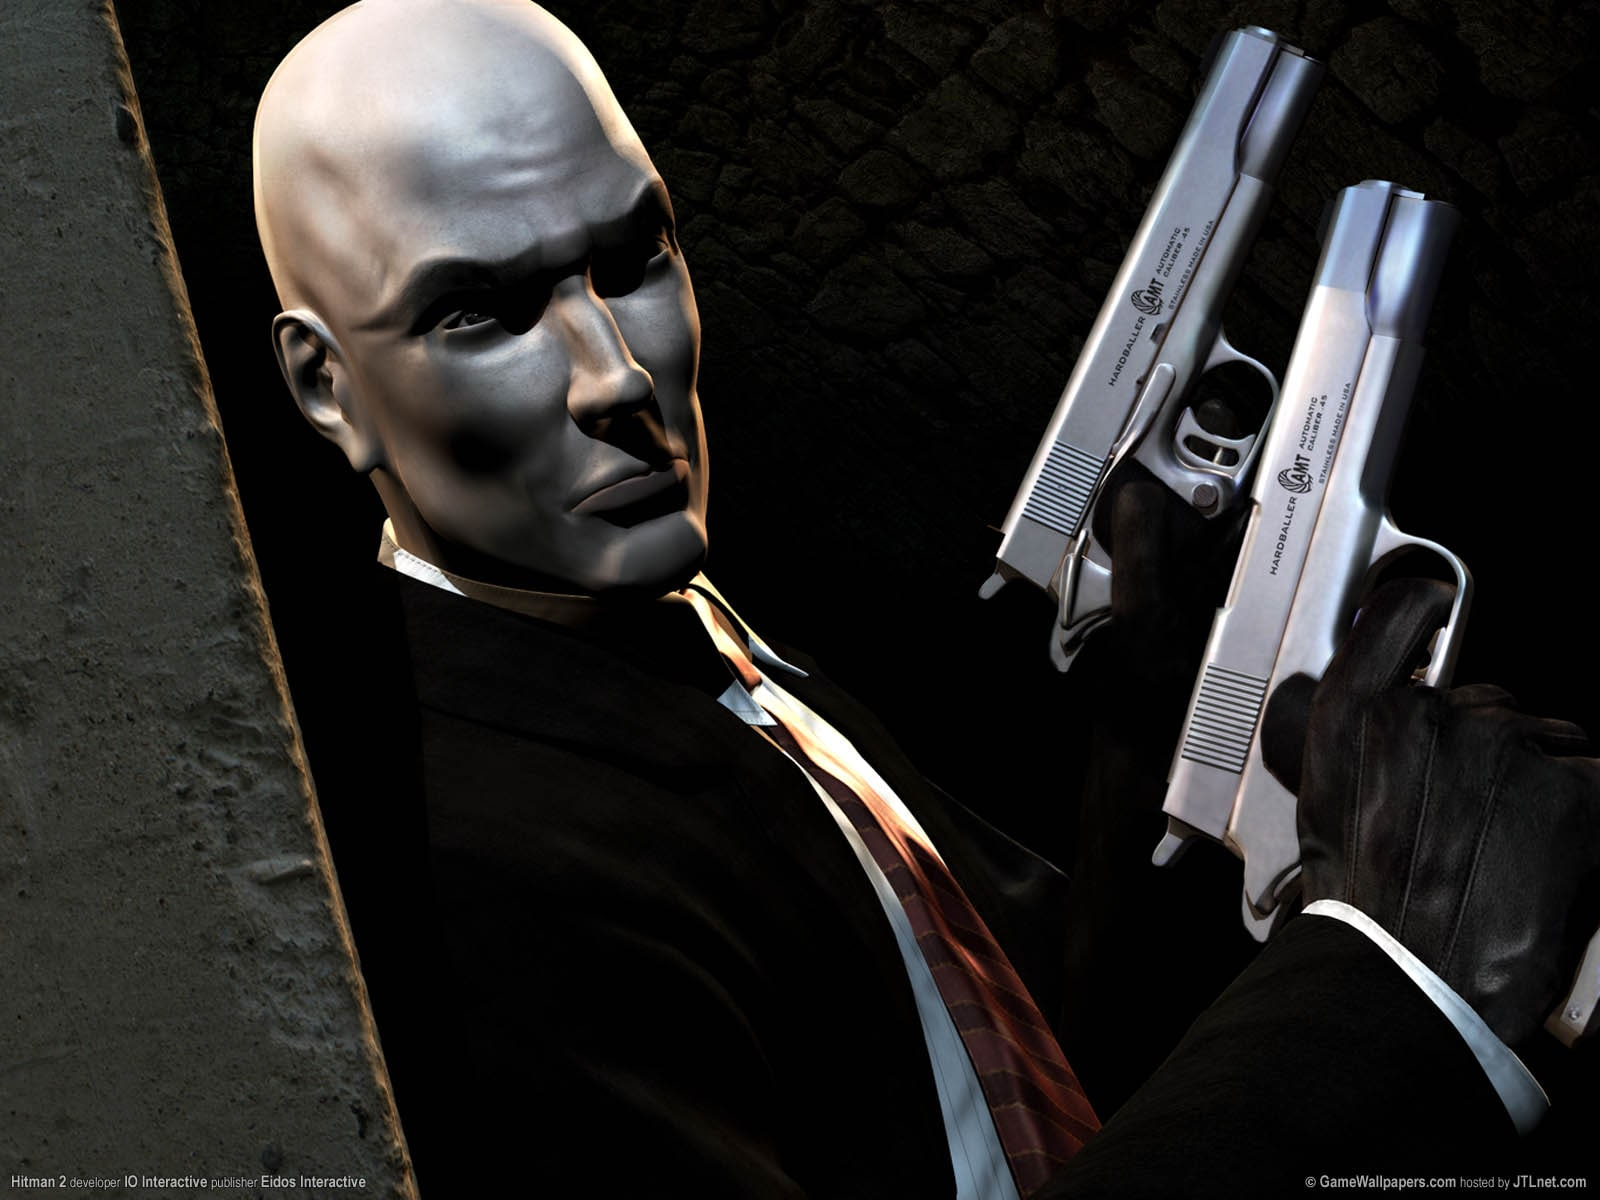 Hitman 2 Silent Assassin Cheats And Codes For Playstation 2 Cheat Happens